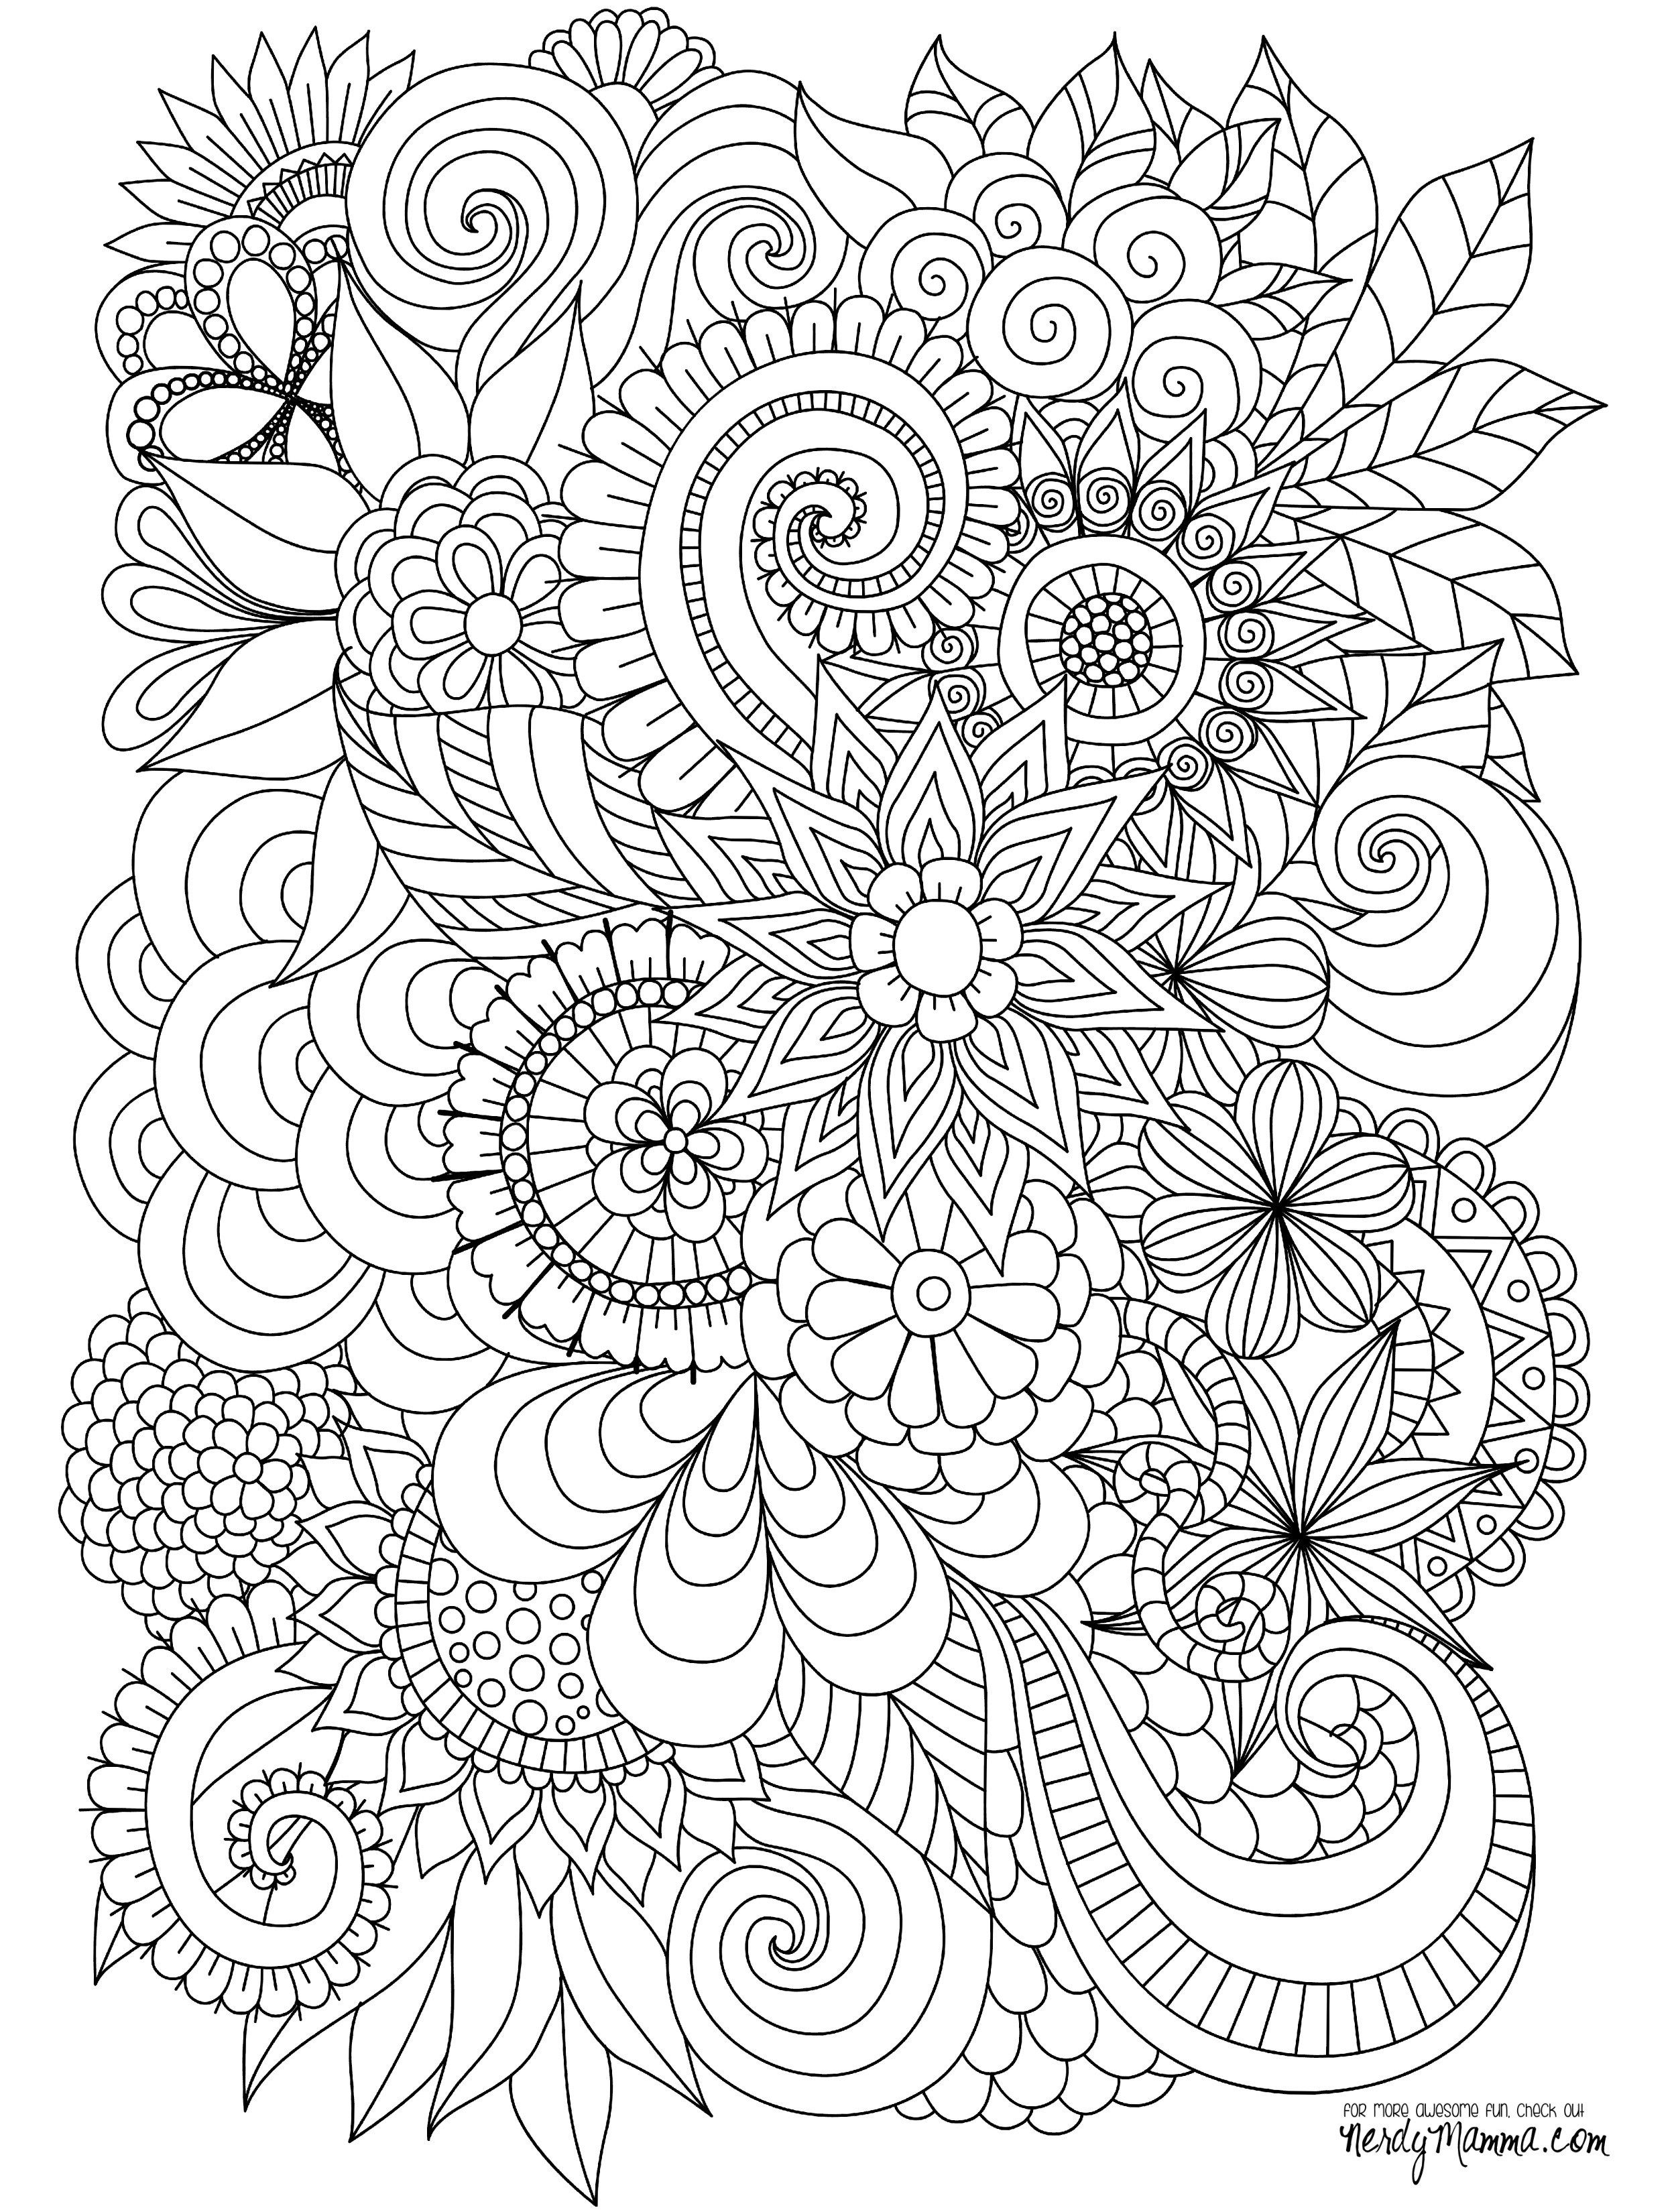 Folk Art Coloring Pages  Gallery 11s - Free Download